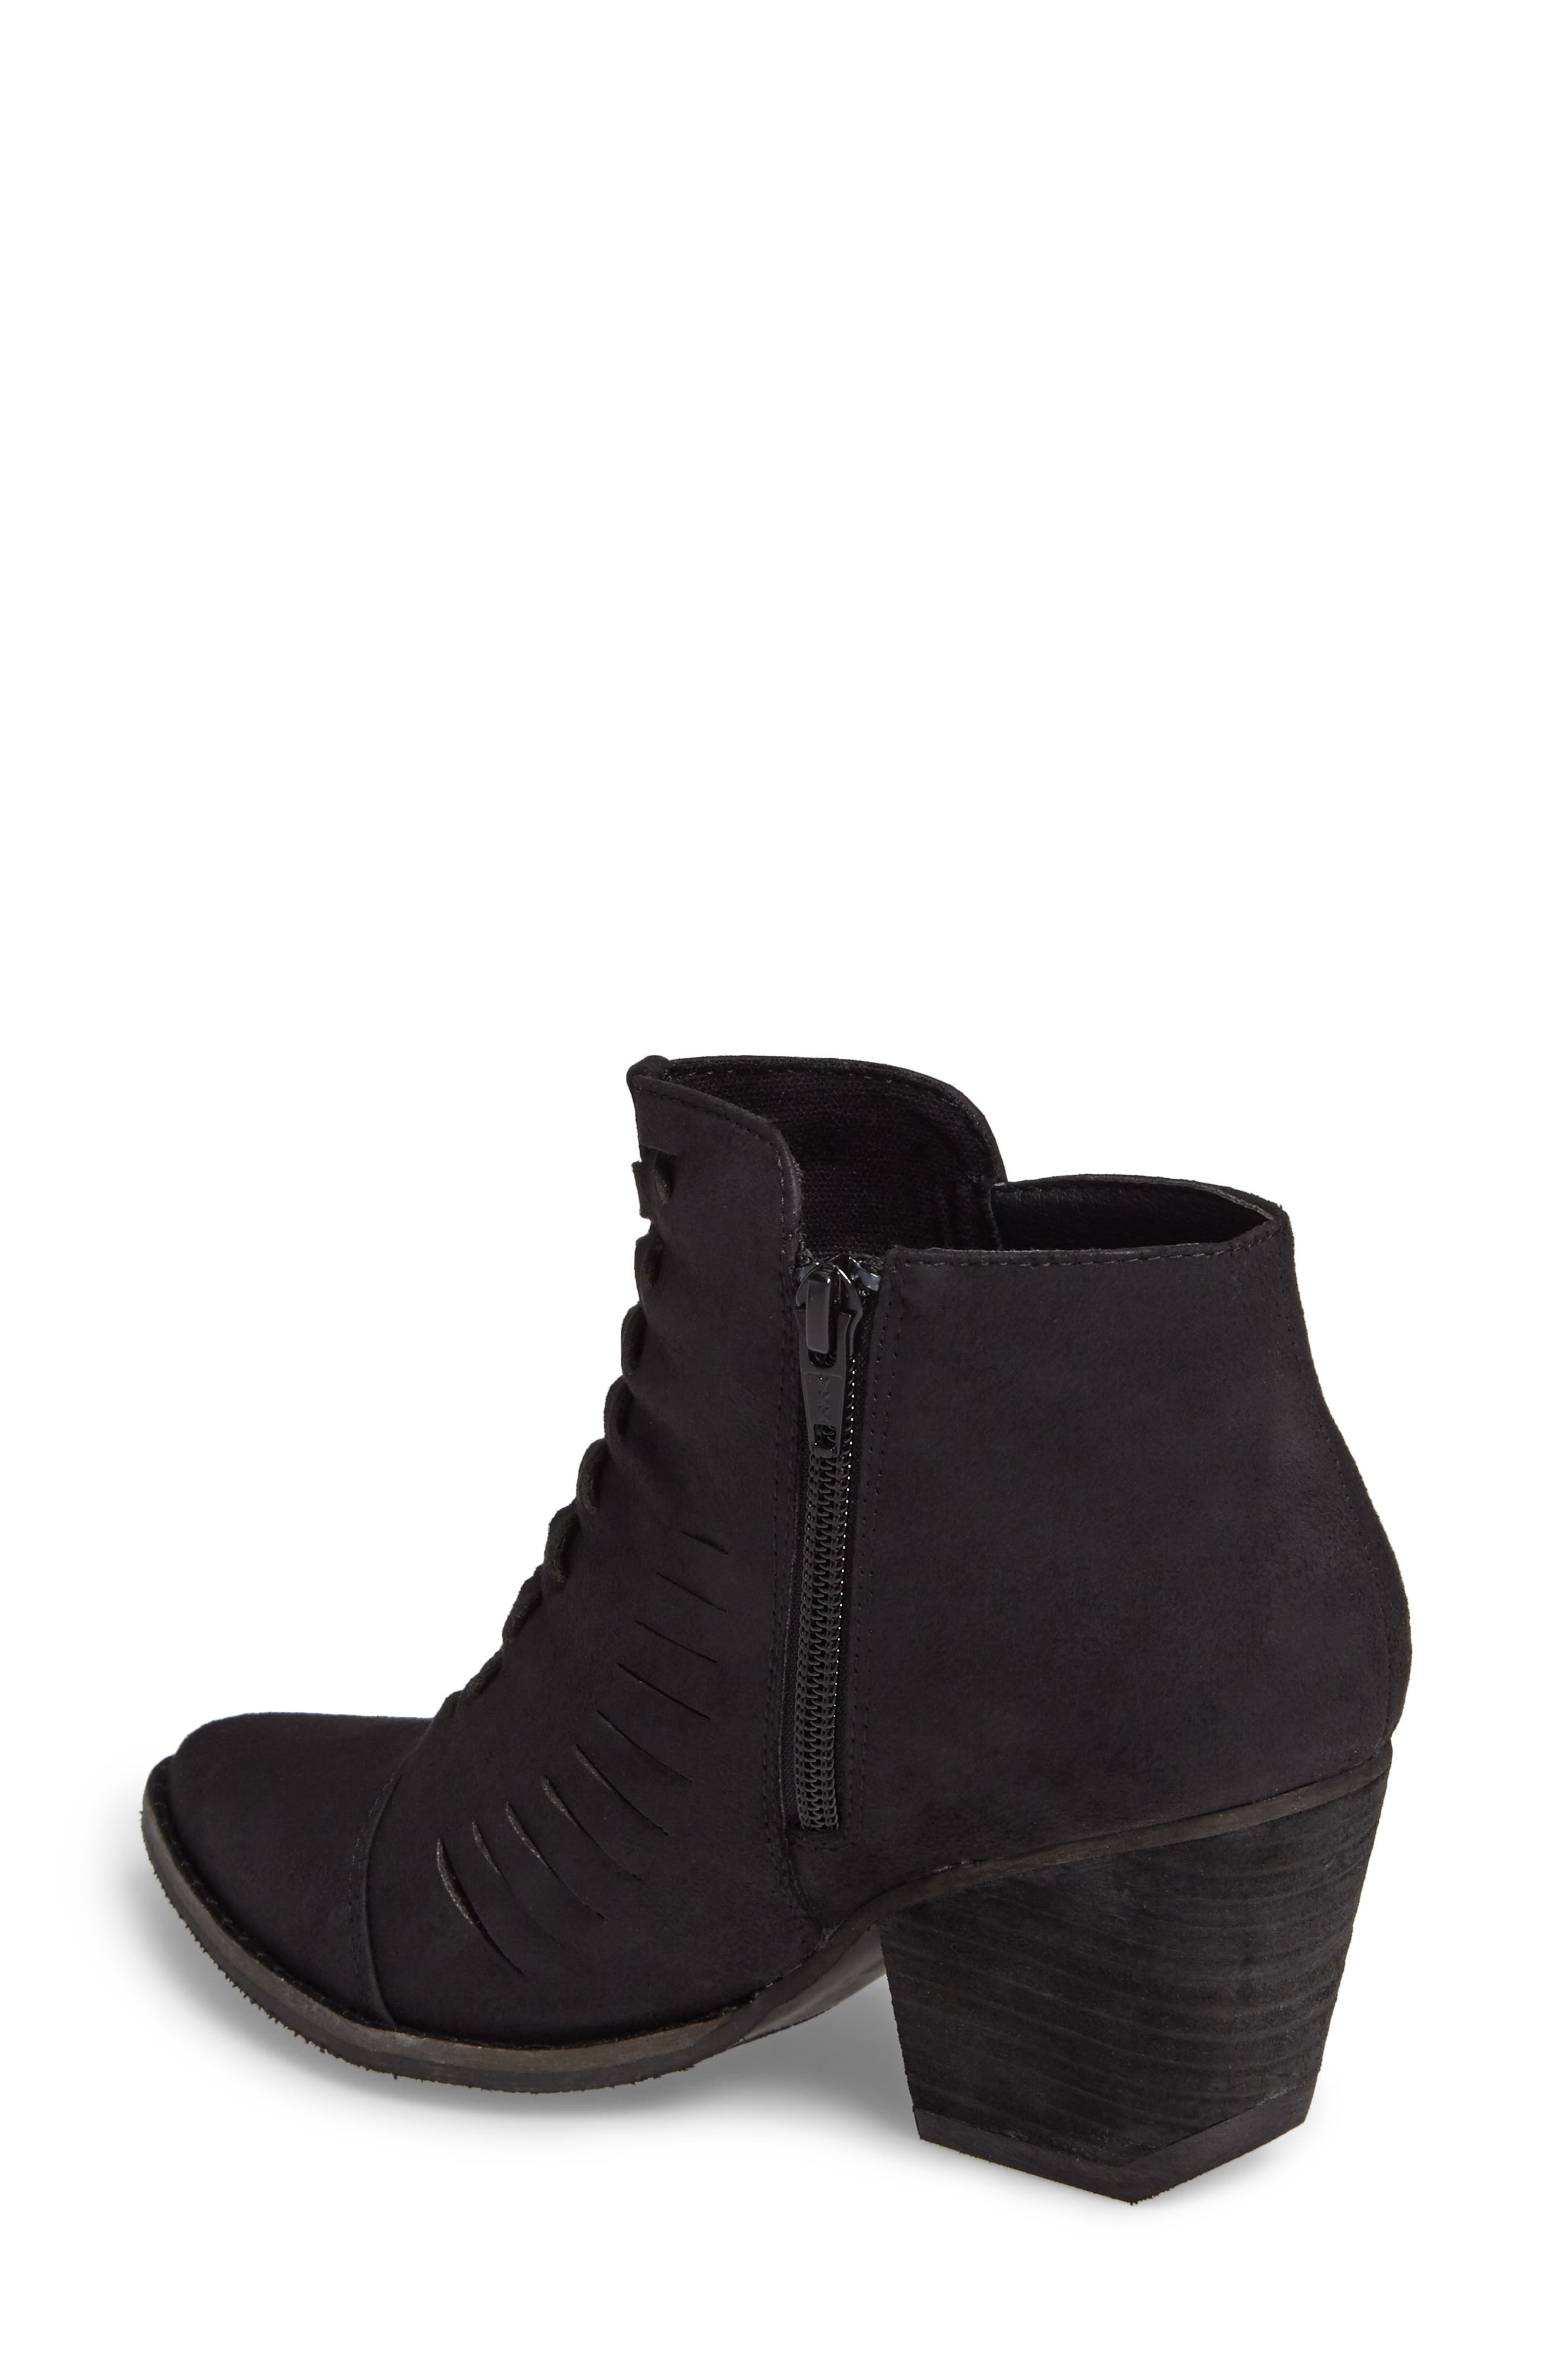 Ally Woven Bootie,                             Alternate thumbnail 5, color,